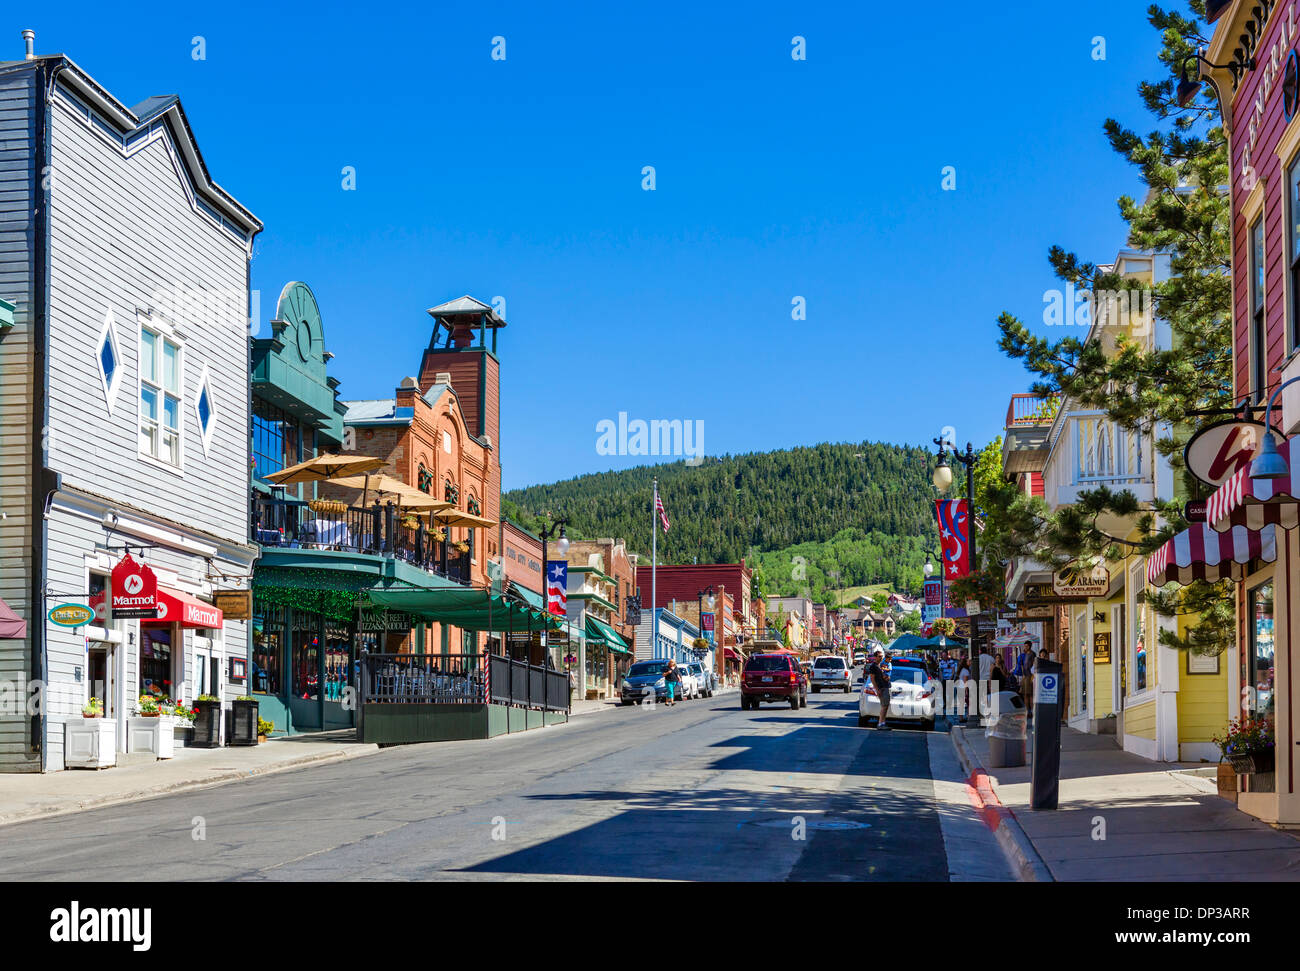 Shops on Main Street in downtown Park City, Utah, USA Stock Photo